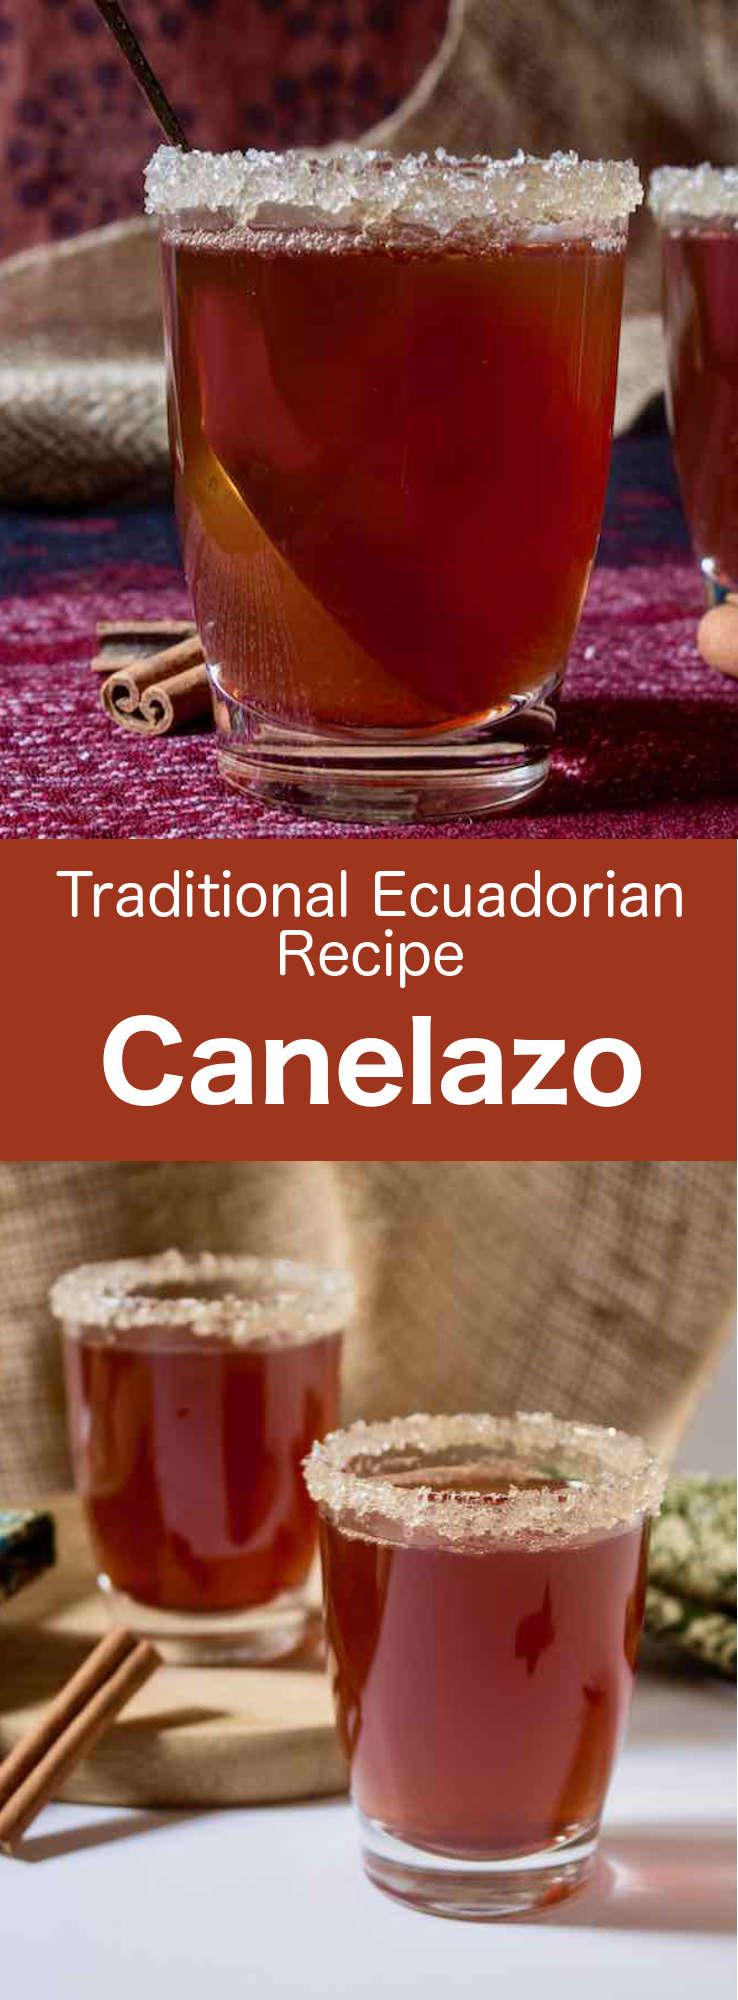 Canelazo is a spiced alcoholic beverage based on aguardiente, that is consumed in the mountainous regions of Ecuador, Colombia and northern Argentina. #Ecuador #EcuadorFood #EcuadorianCuisine #EcuadorianRecipe #WorldCuisine #196flavors